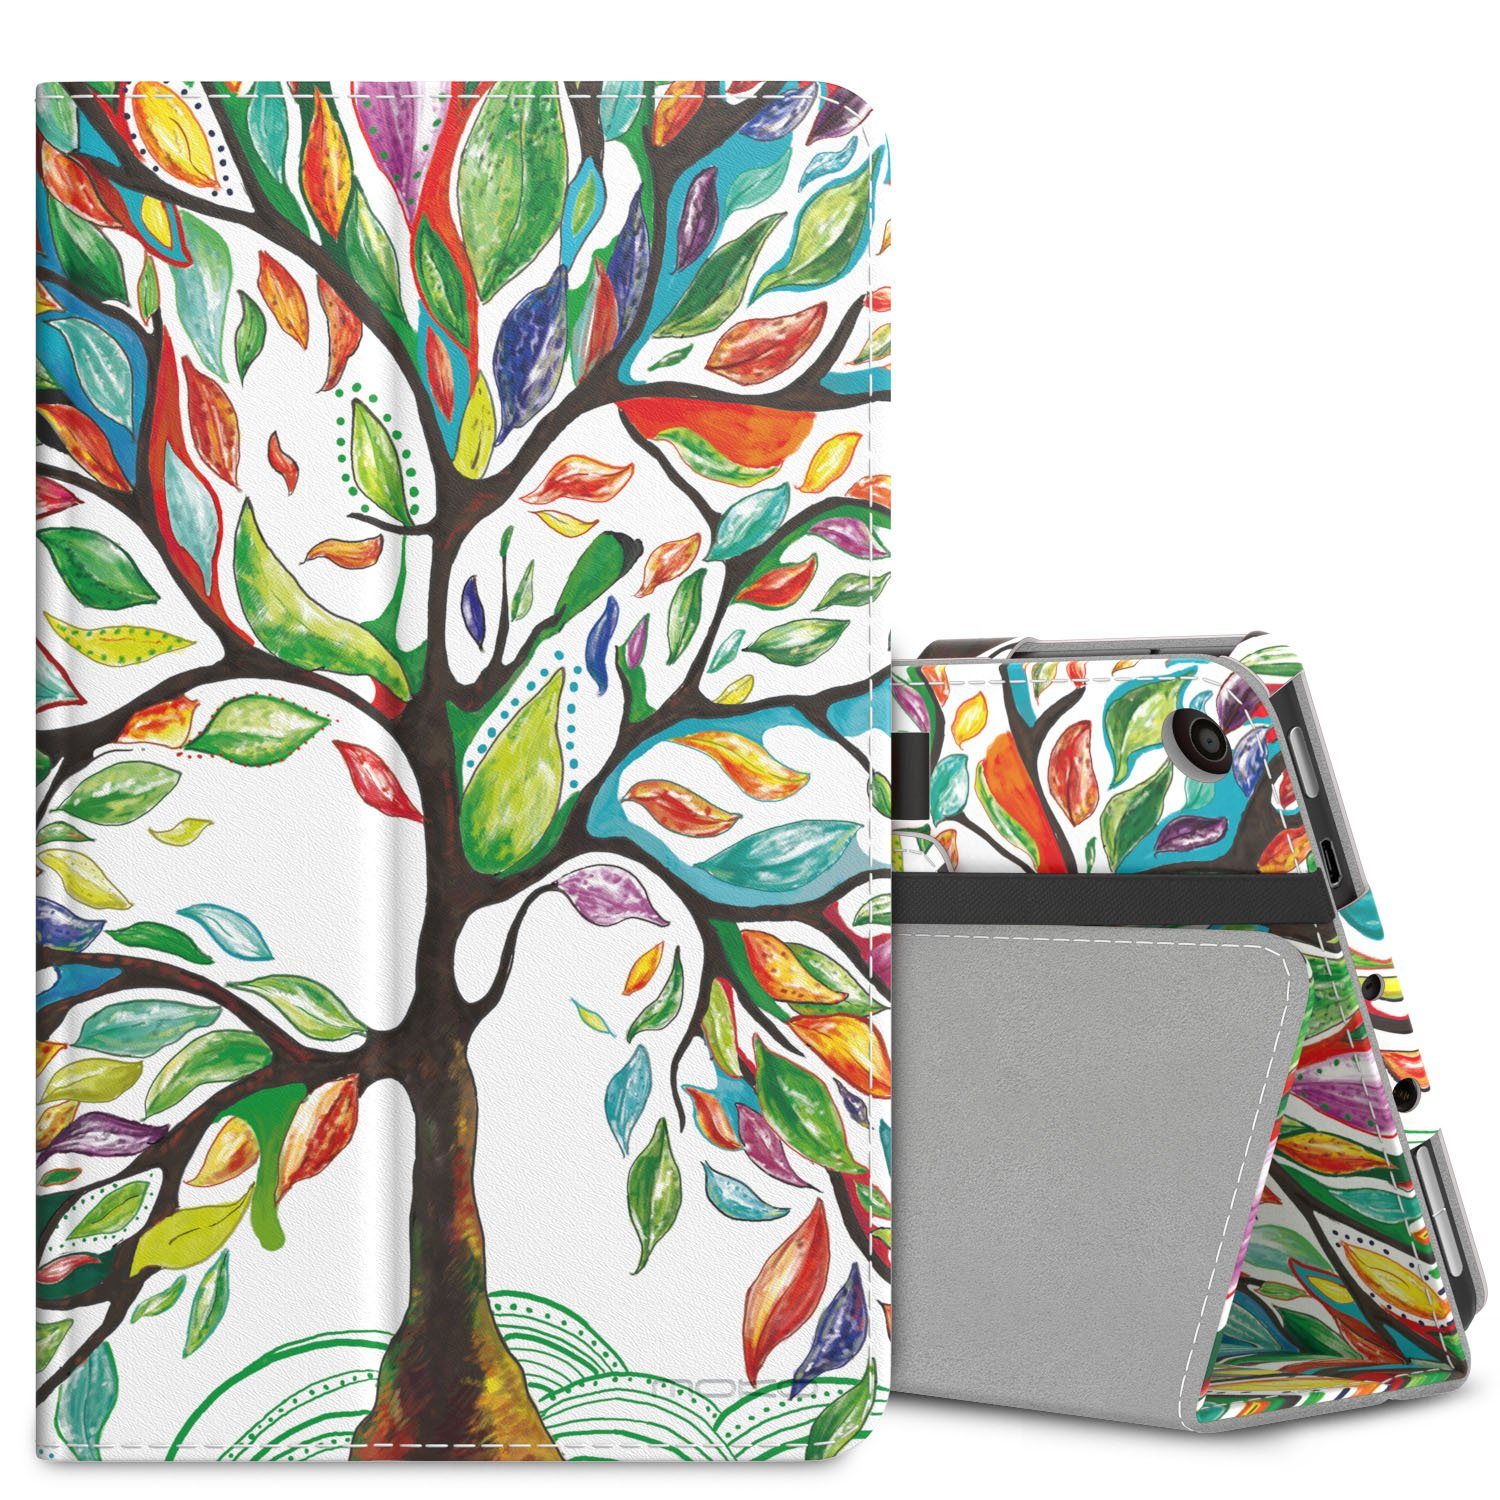 MoKo Case for All-New Amazon Fire 7 Tablet (7th Generation, 2017 Release Only) - Slim Folding Stand Cover Case for Fire 7, Lucky TREE (with Auto Wake / Sleep) by MoKo